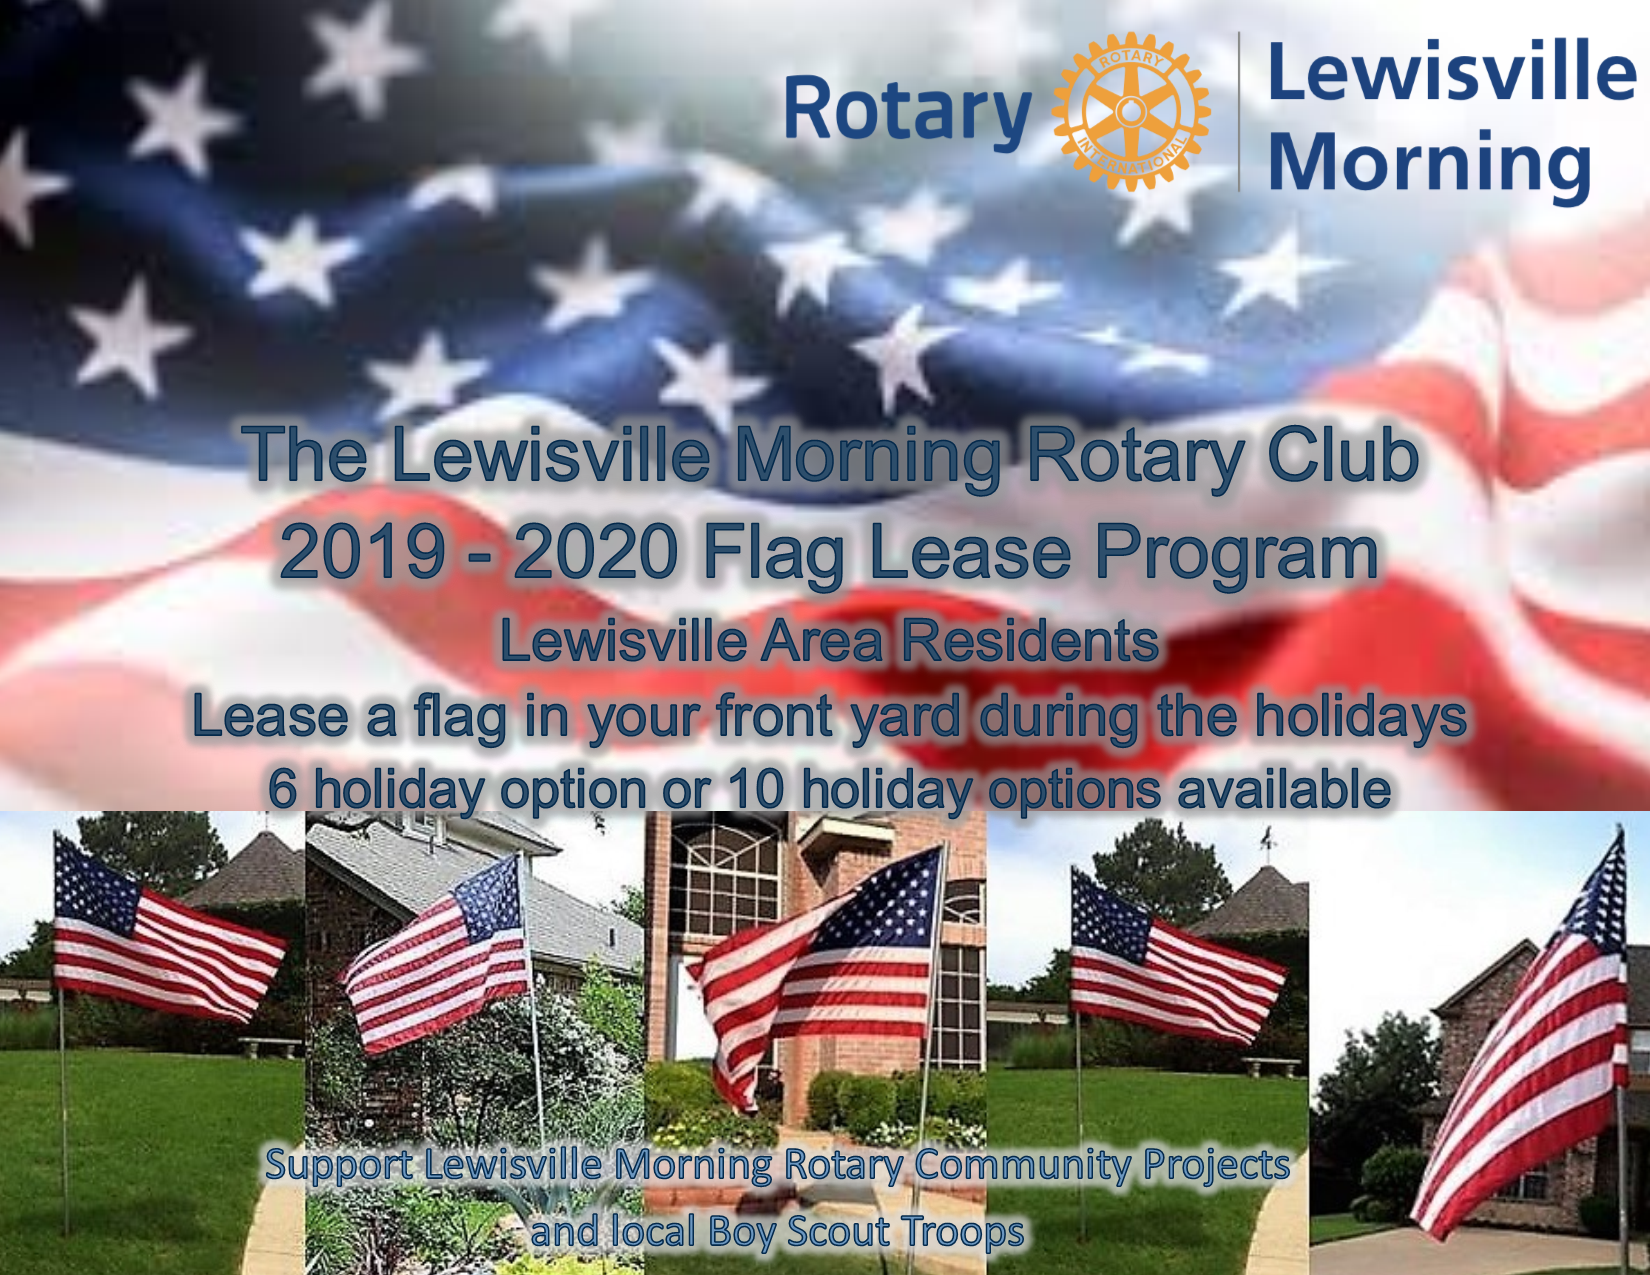 Stories | Lewisville Morning Rotary Club